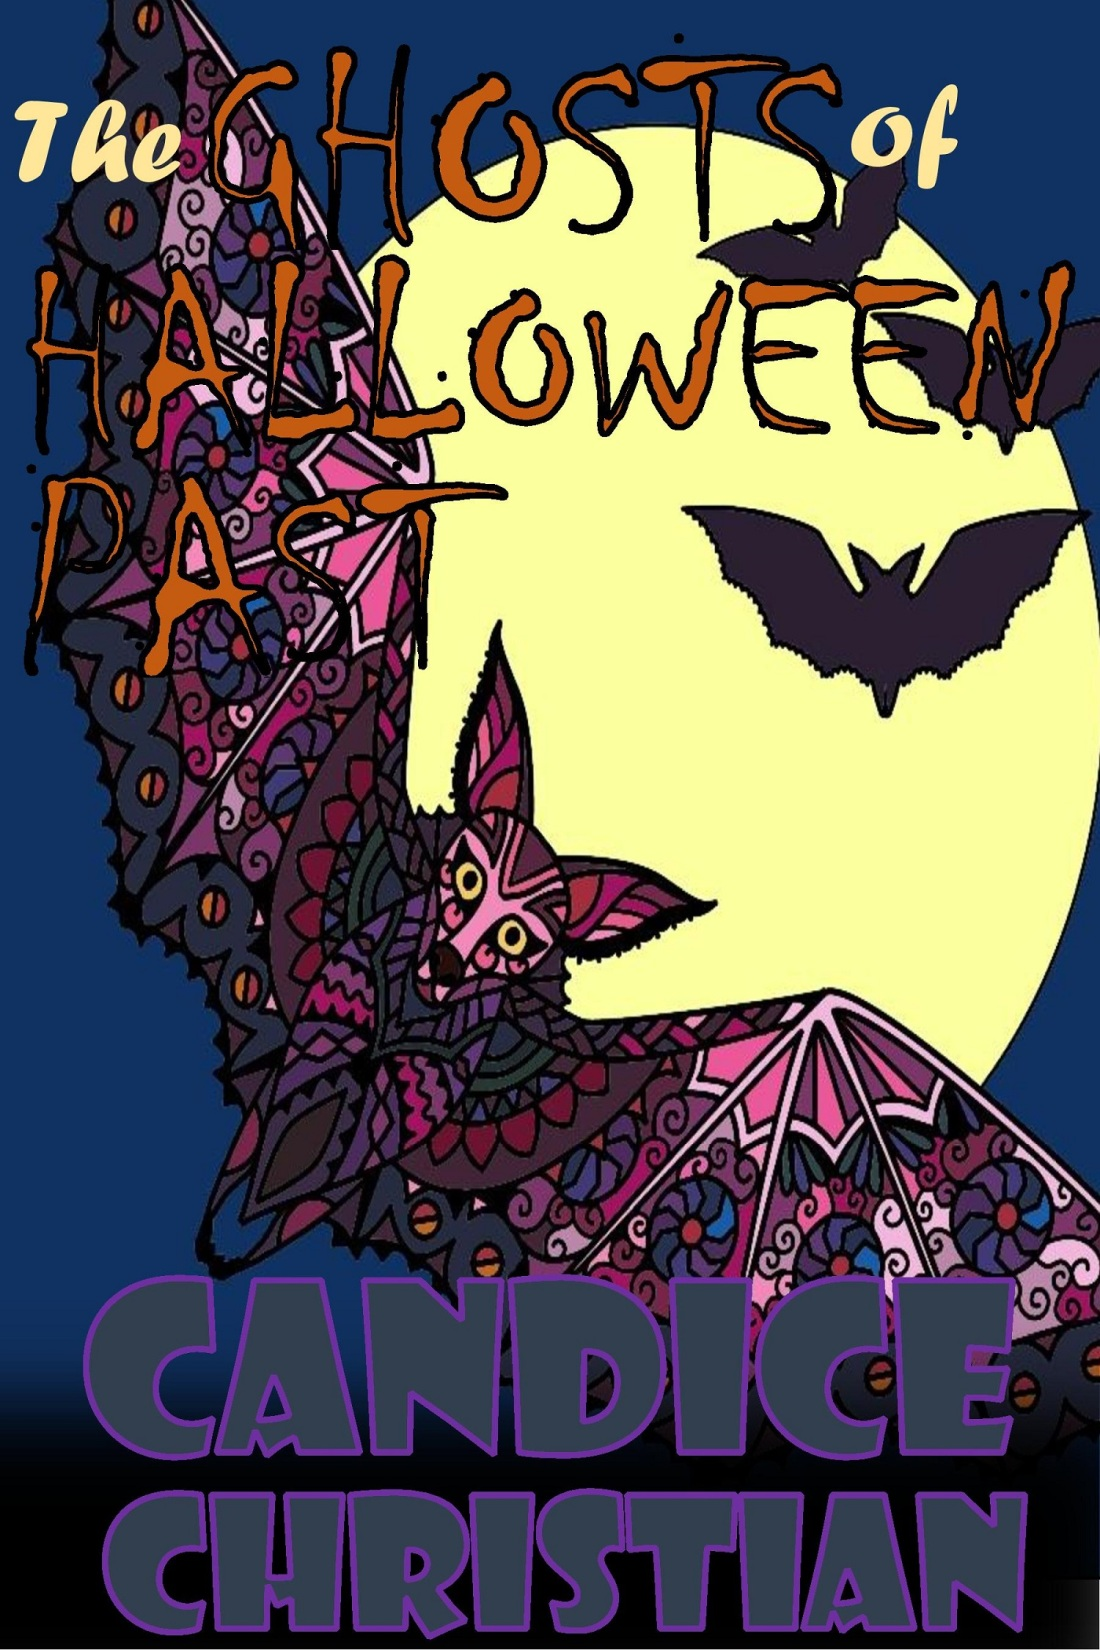 THE GHOSTS OF HALLOWEEEN PAST COVER RESIZED